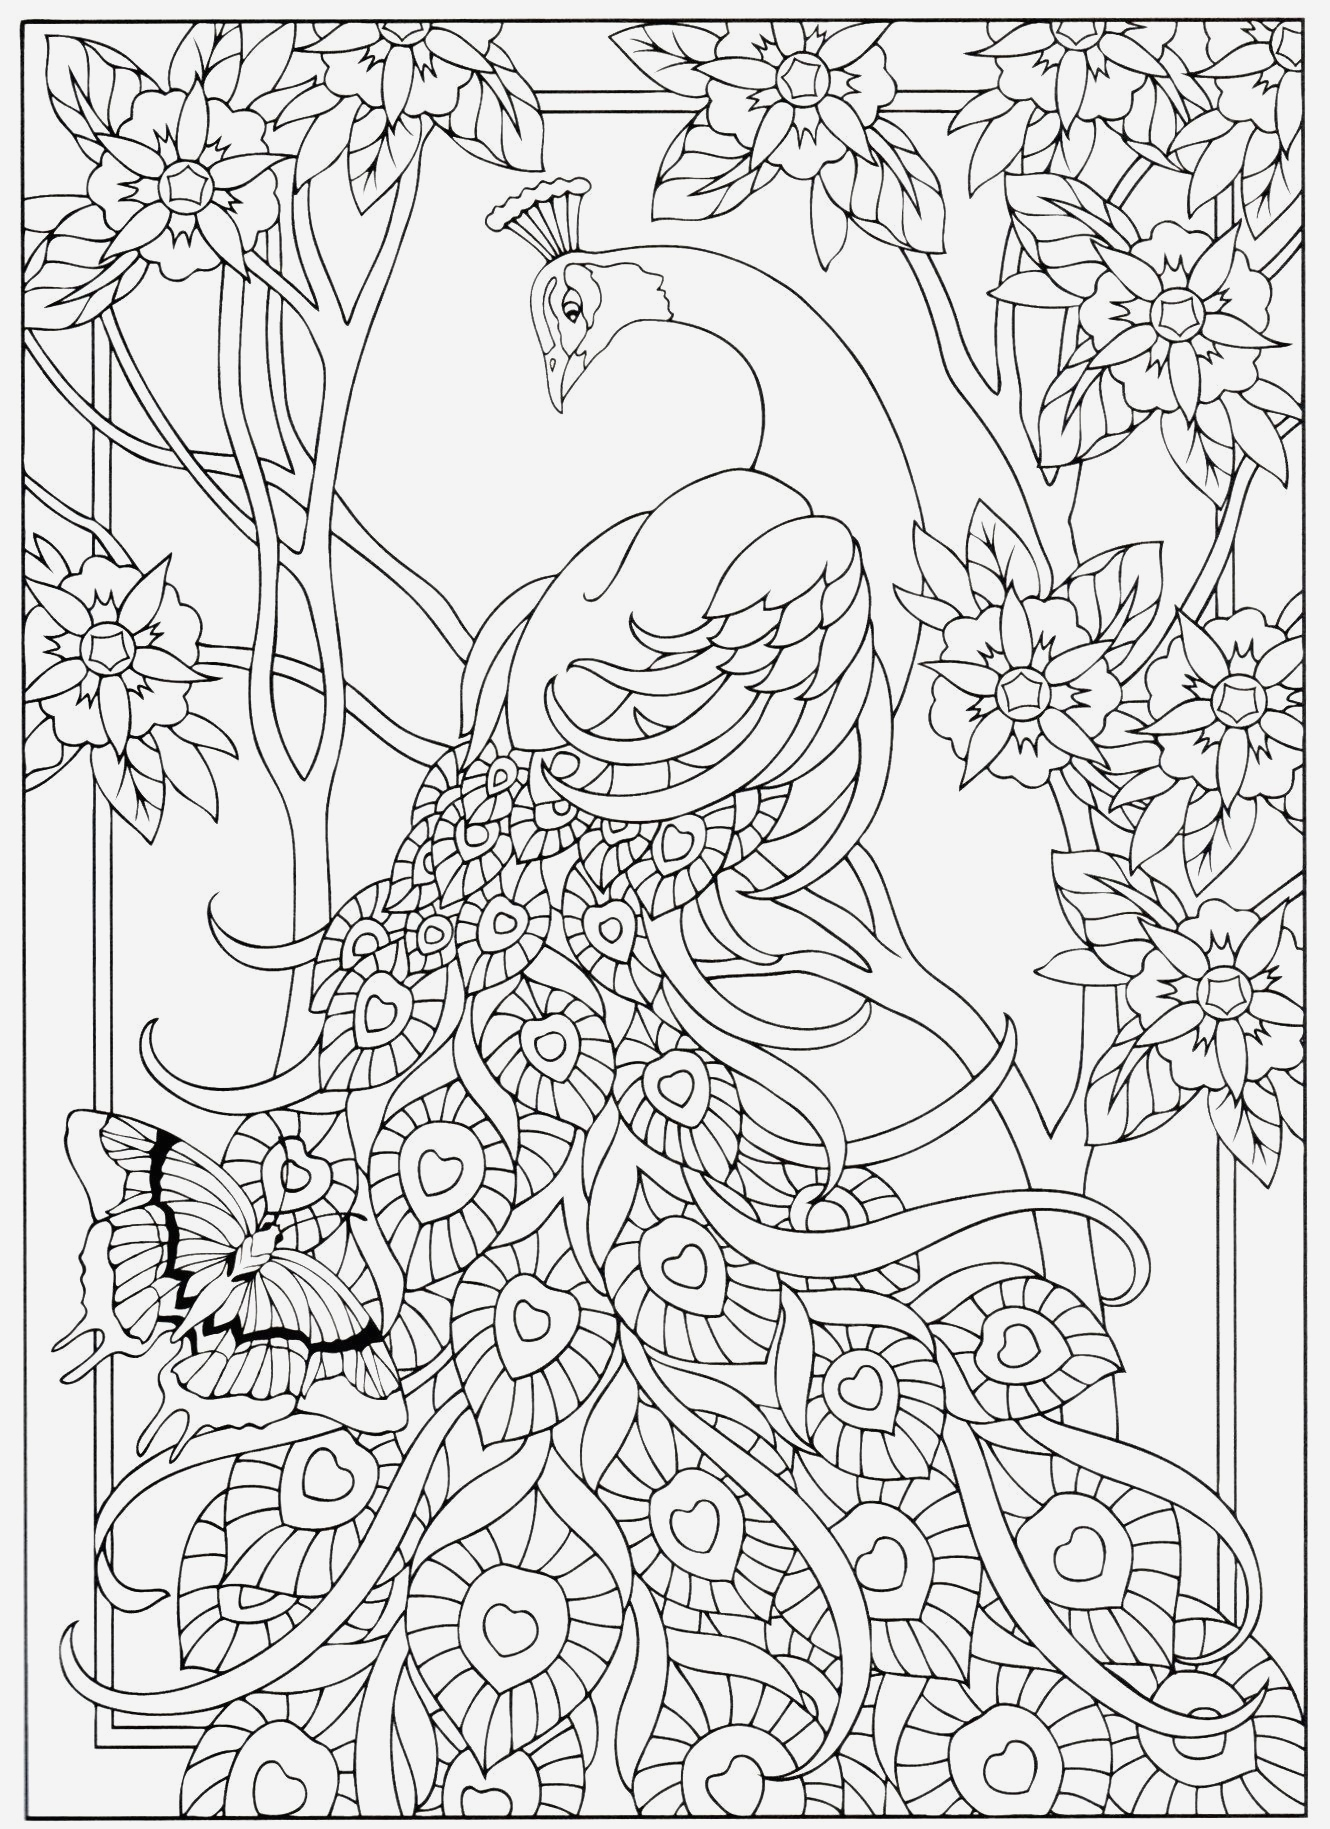 Coloriage De Paon Gratuit A Imprimer Best Of Creative Haven S Peacock Designs Of Coloriage De Paon Gratuit A Imprimer